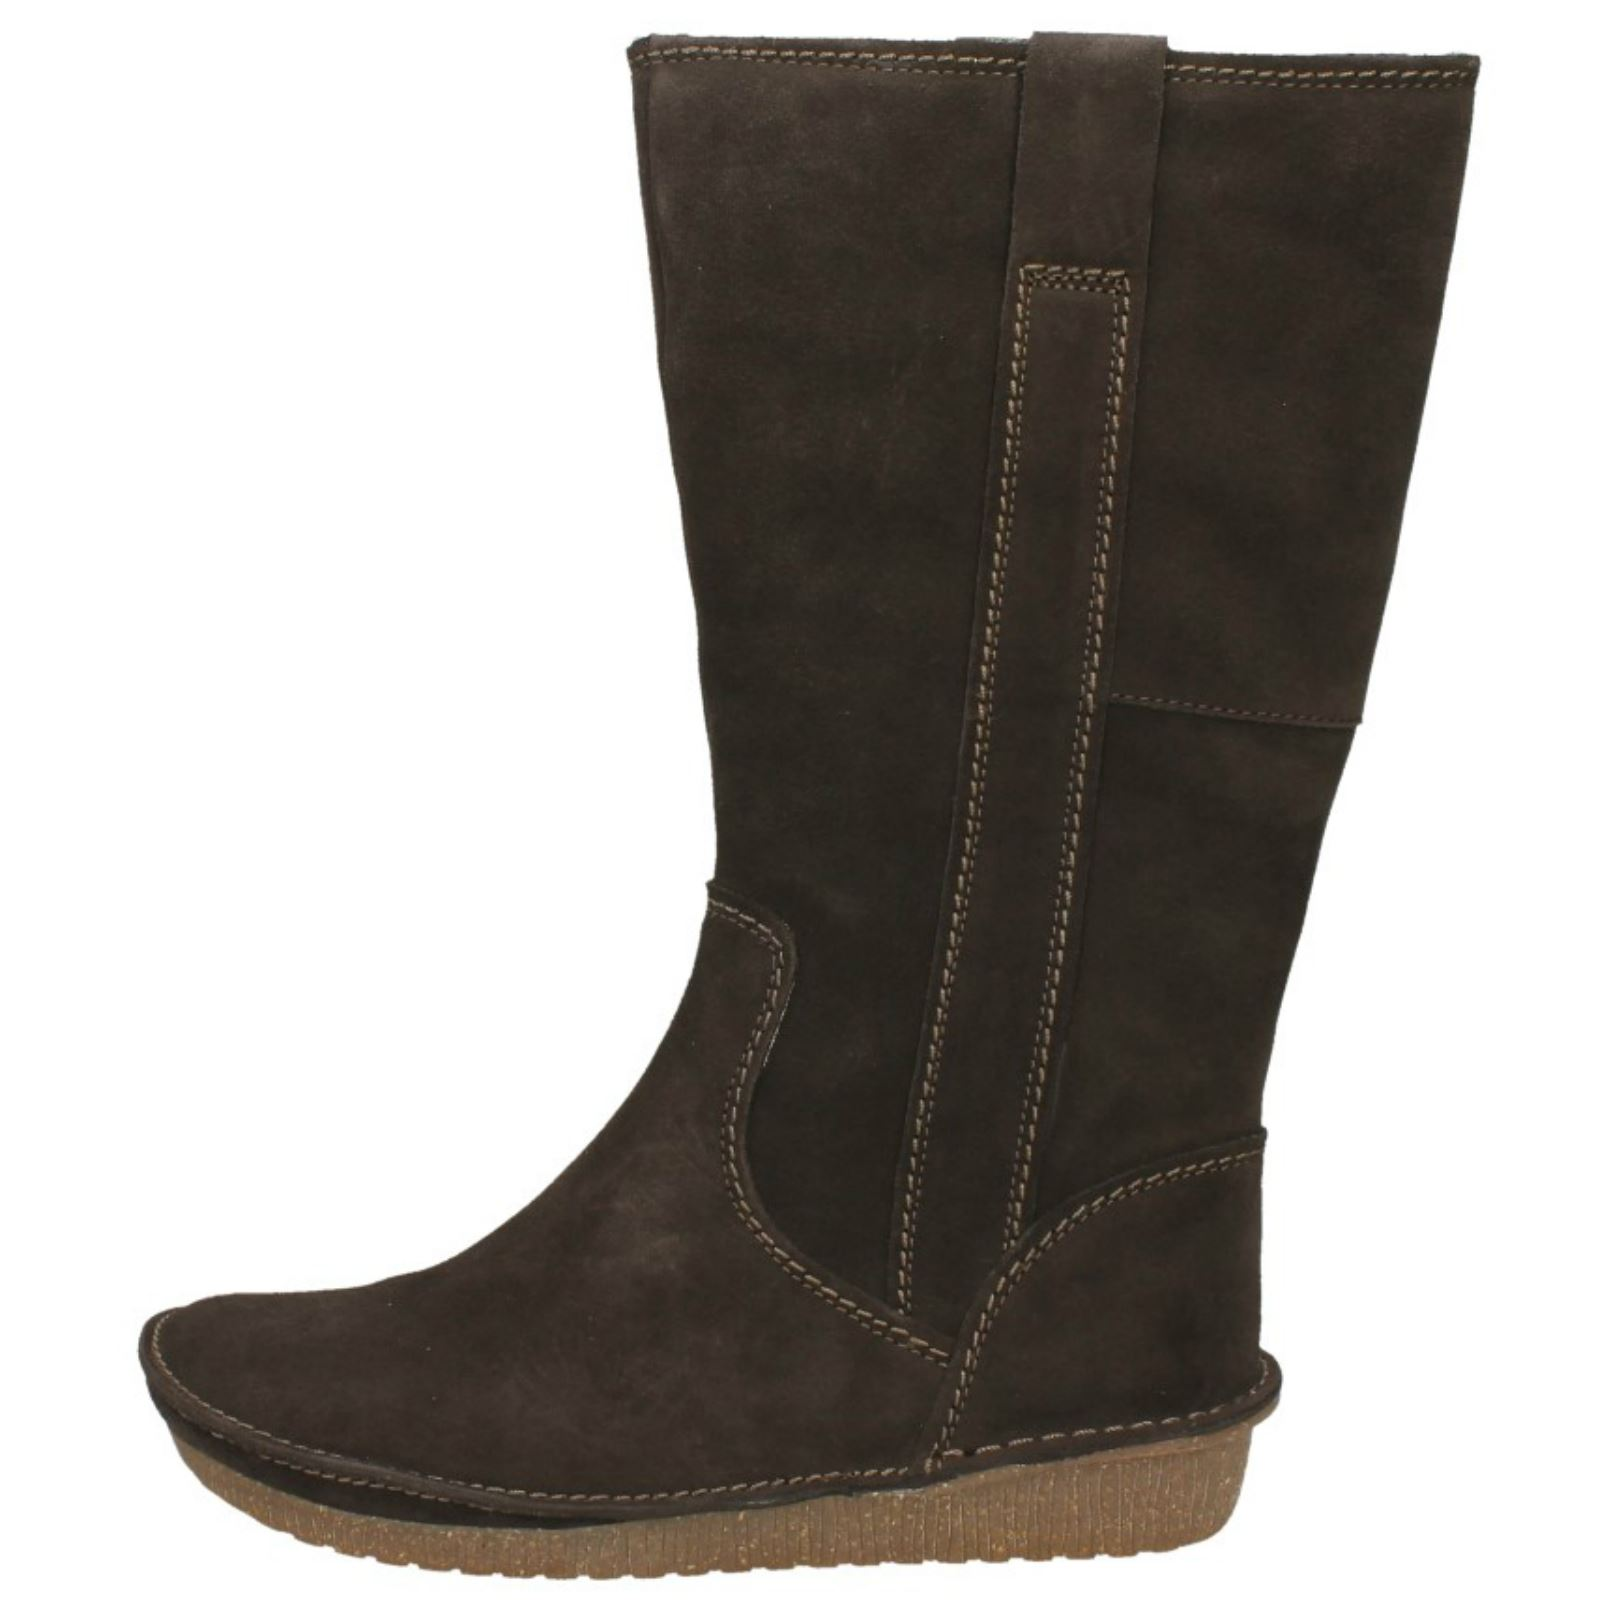 Ladies Clarks Warm Lined Lined Lined Long Boots Lima Rhapsody 4e1a59